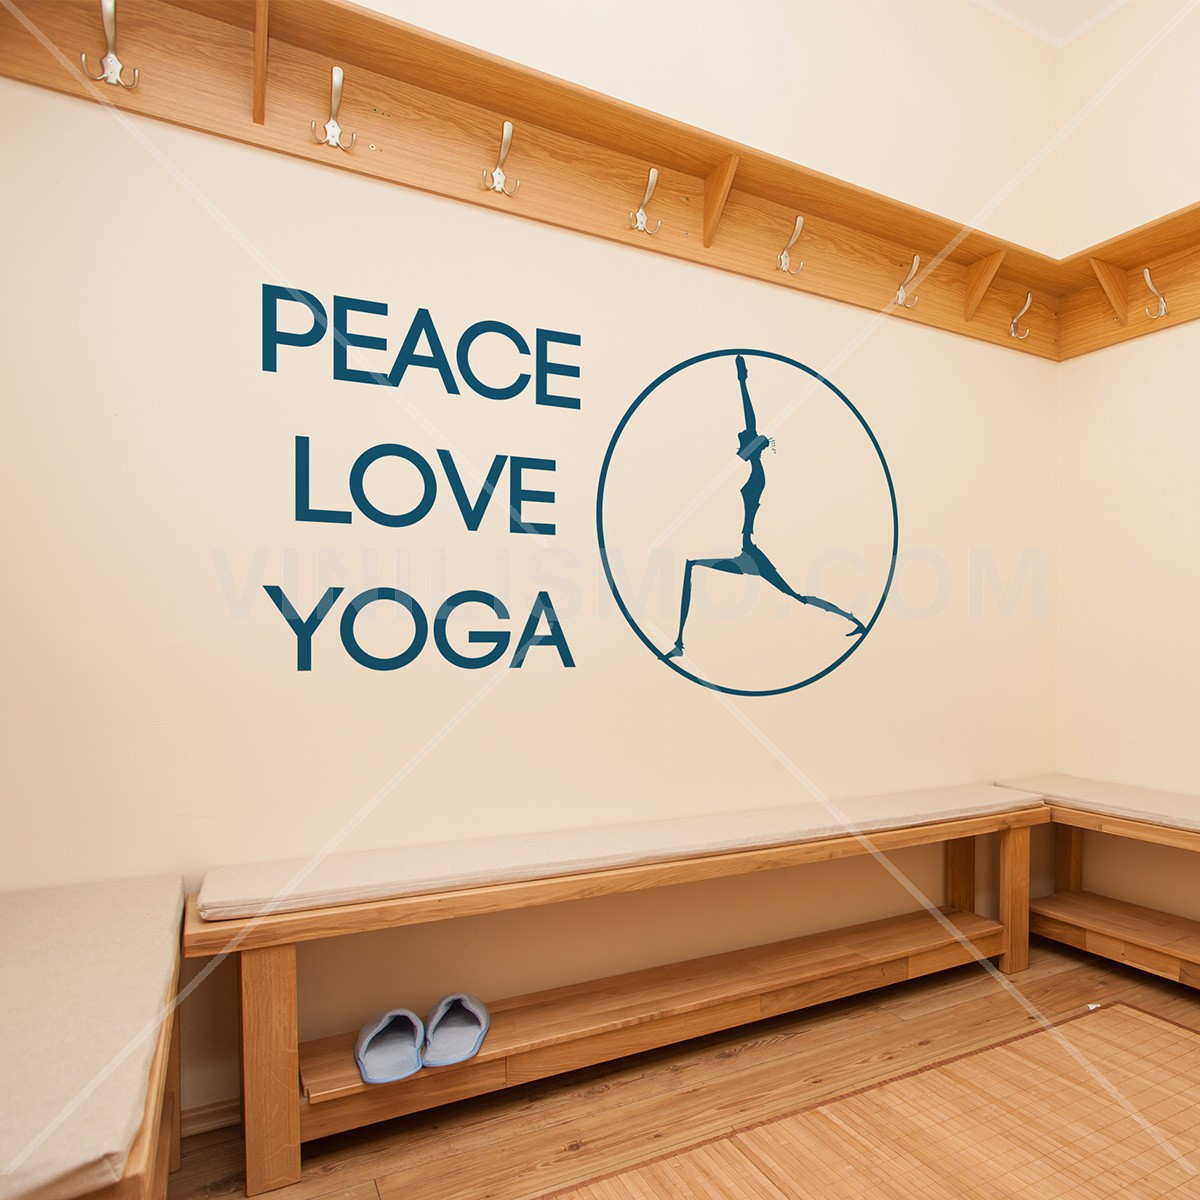 Vinilo decorativo peace love yoga vinilos zen y yoga vinilos decorativos - Vinilos decorativos zen ...